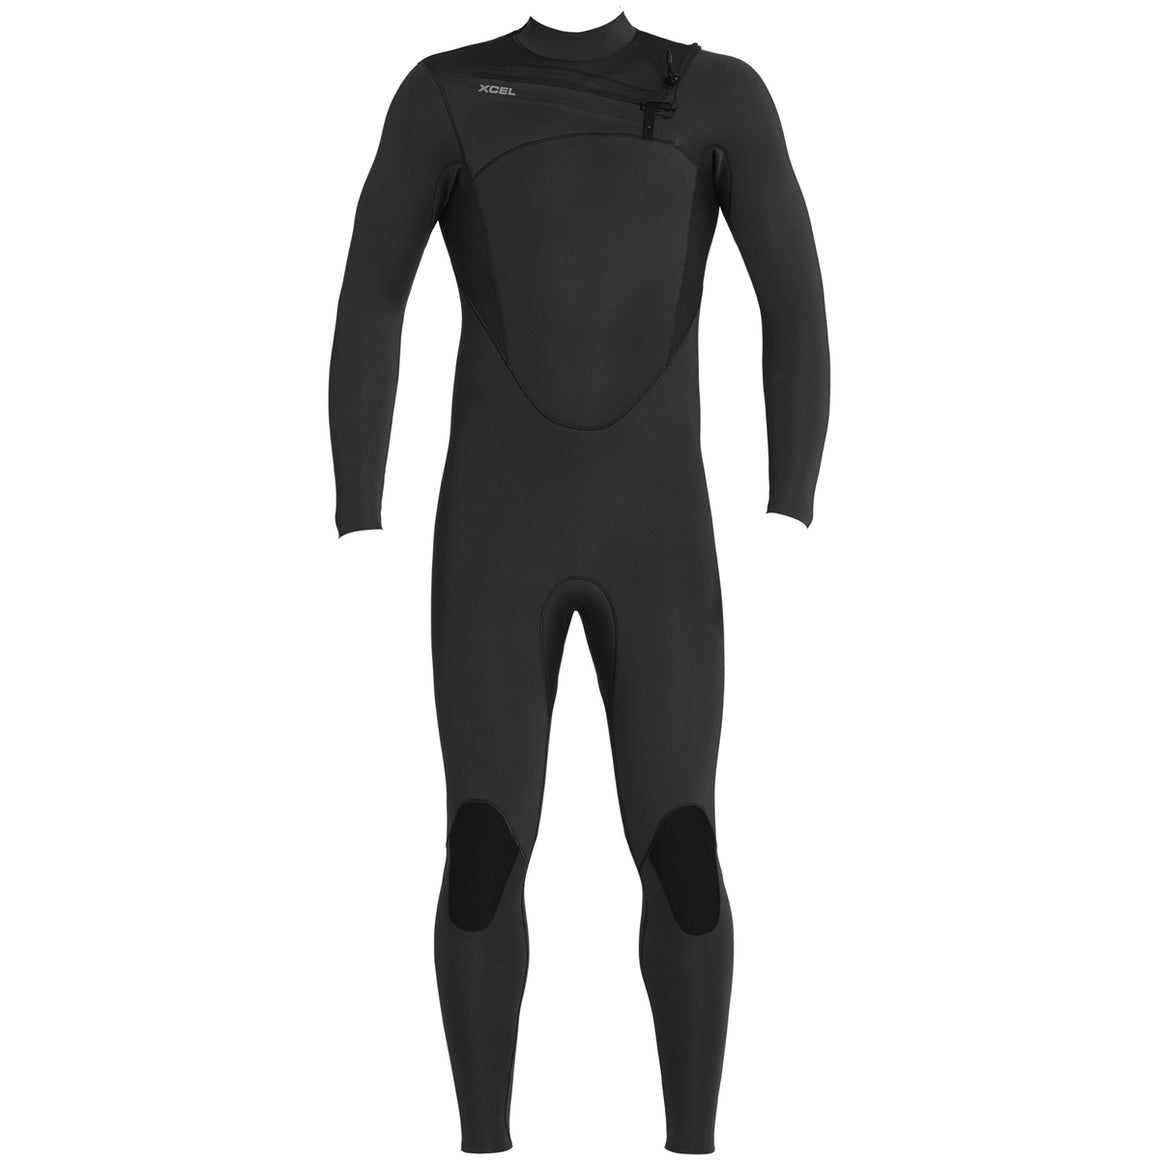 3/2 Men's XCEL Comp Fullsuit 3/2 (chest zip) - Black - Surf Ontario